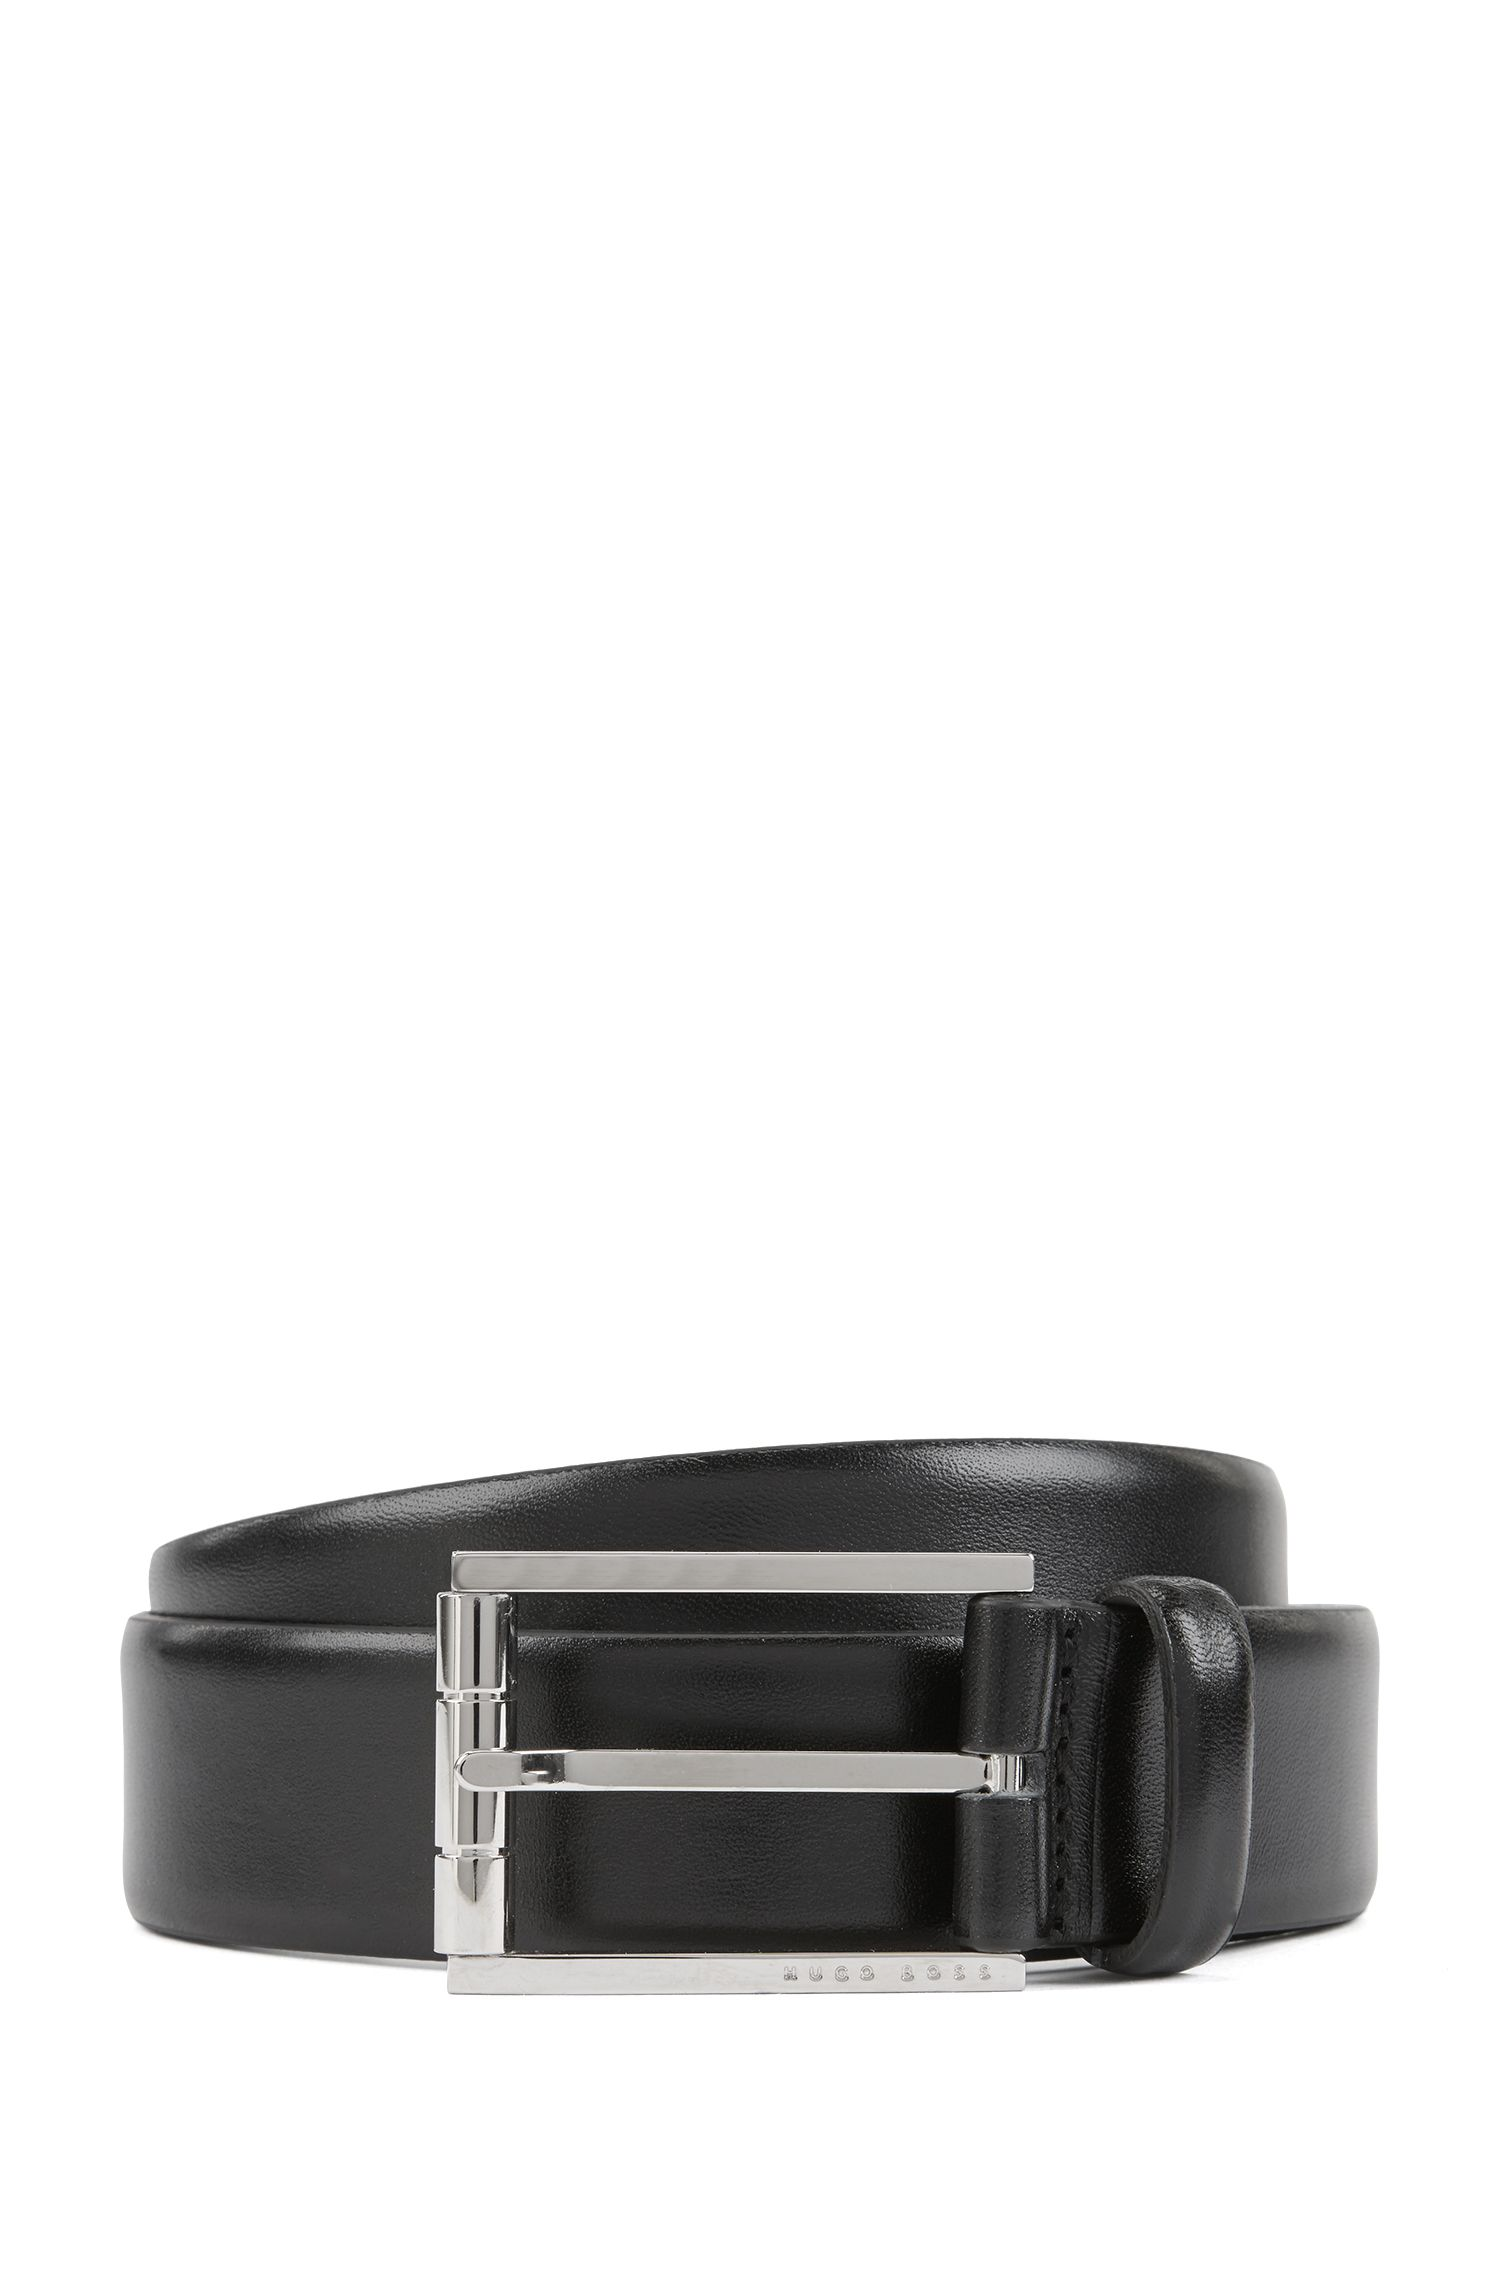 Italian leather belt with a polished roller buckle, Black